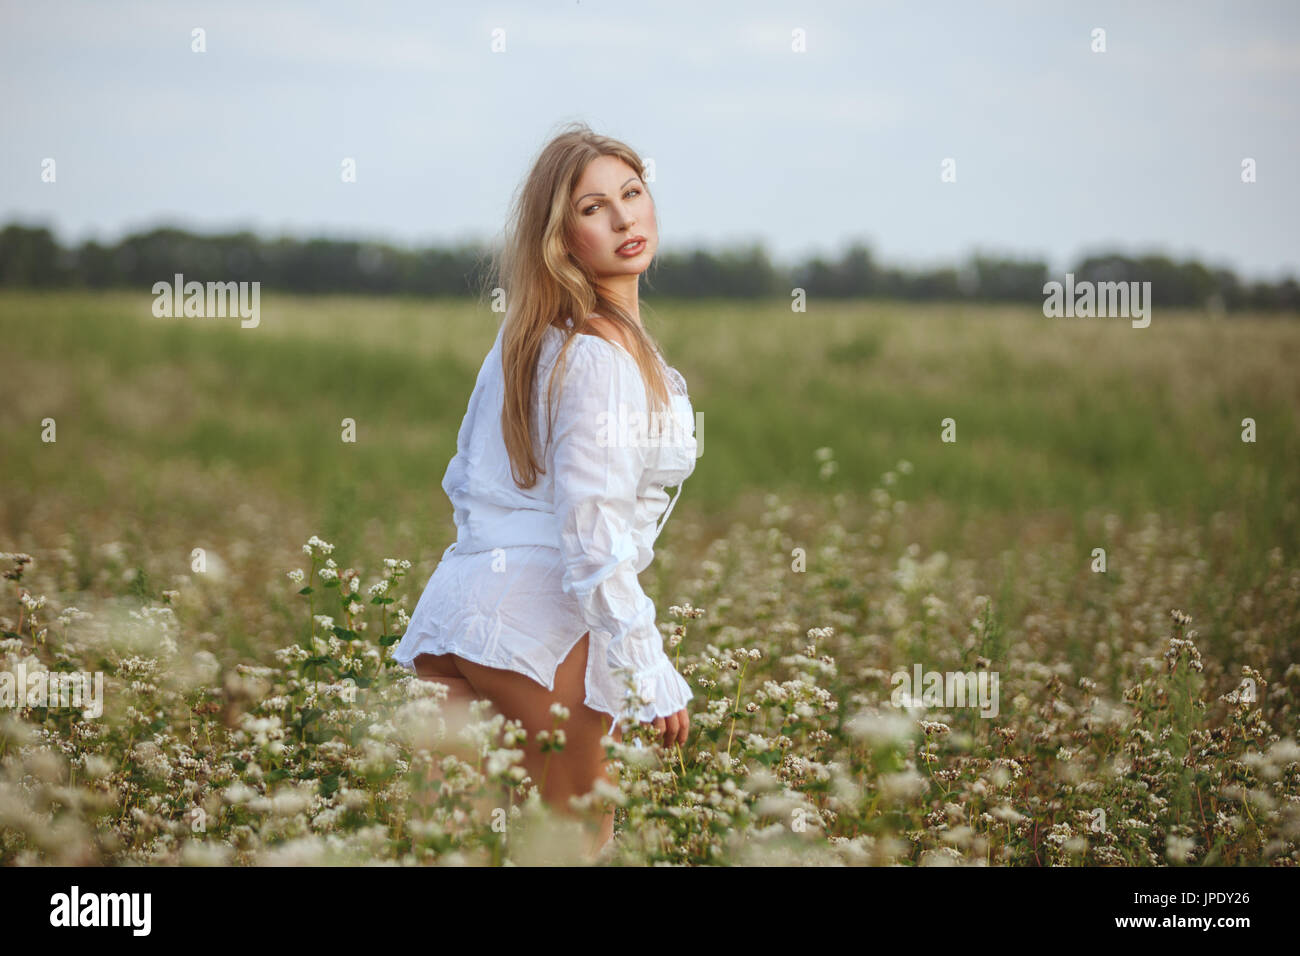 Woman in field flowers stands in the field. Stock Photo